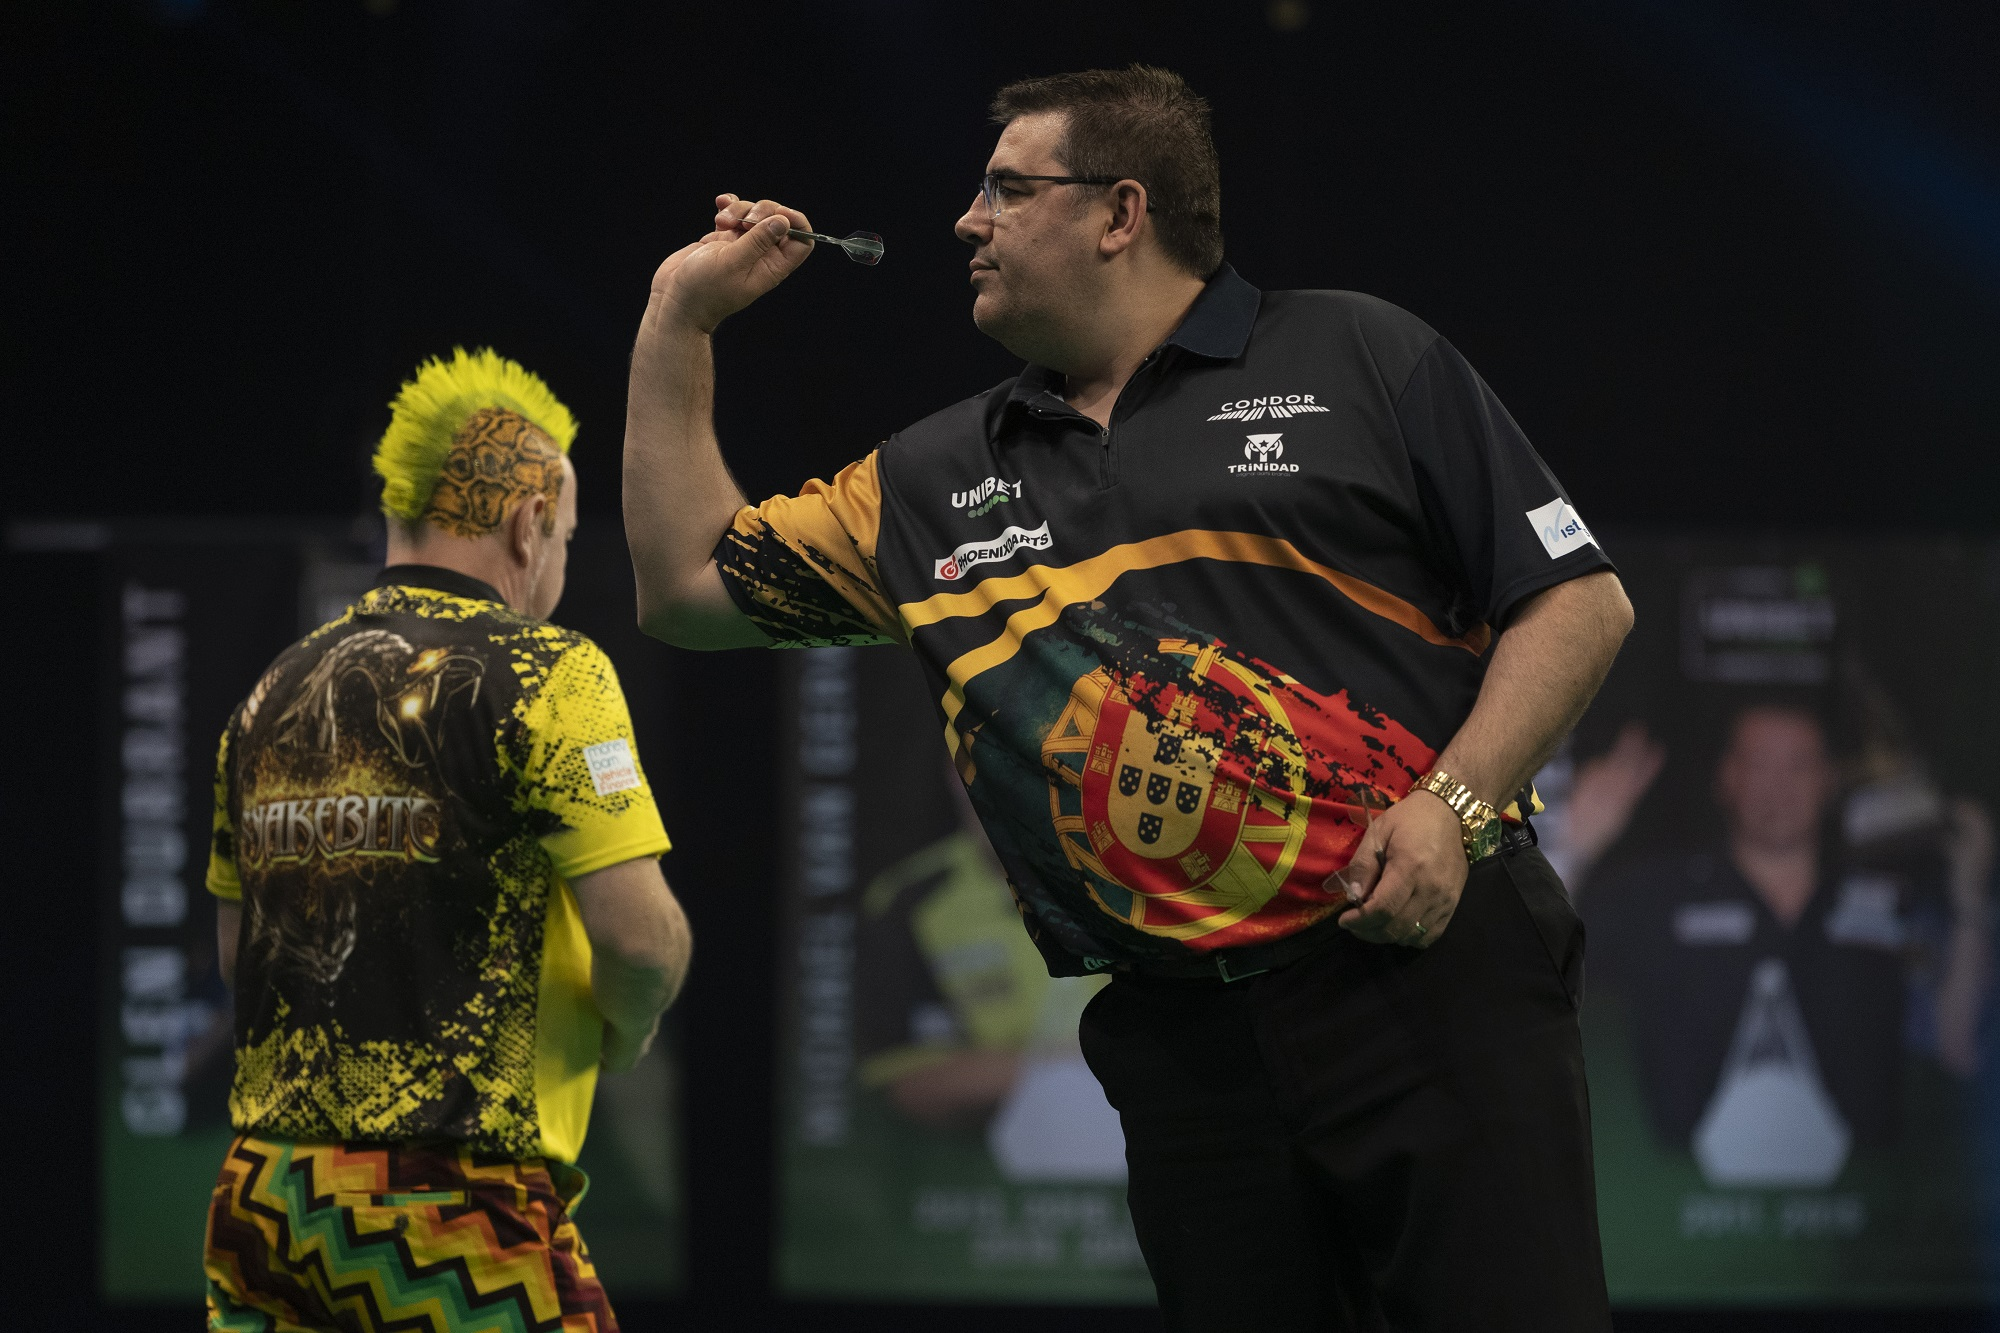 De Sousa wins first title of 2021 at PDC Super Series